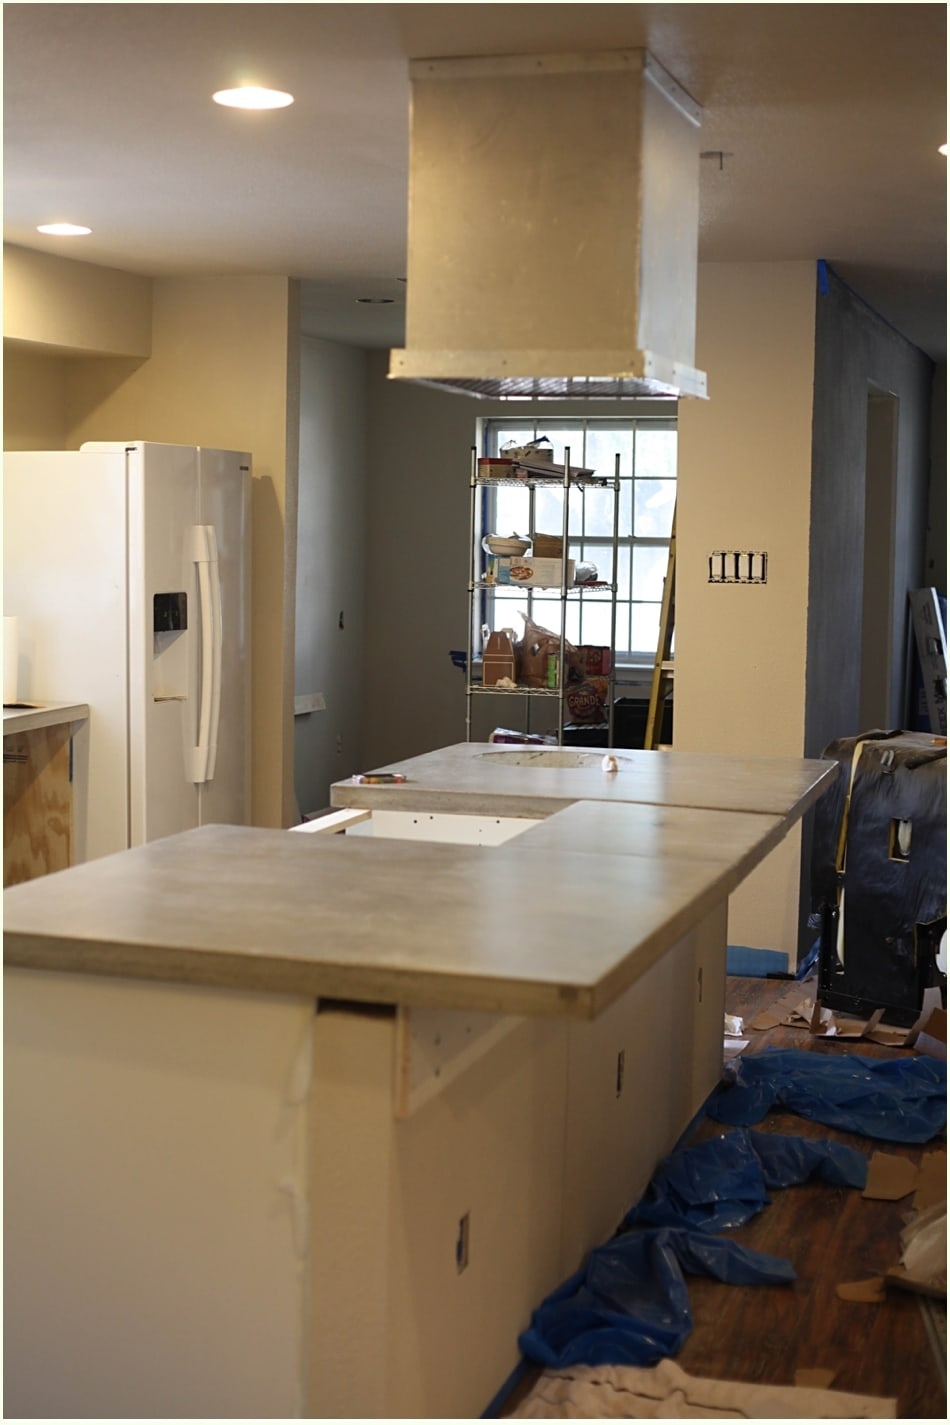 A kitchen with smooth cement slabs as countertops, with cabinets still under construction.